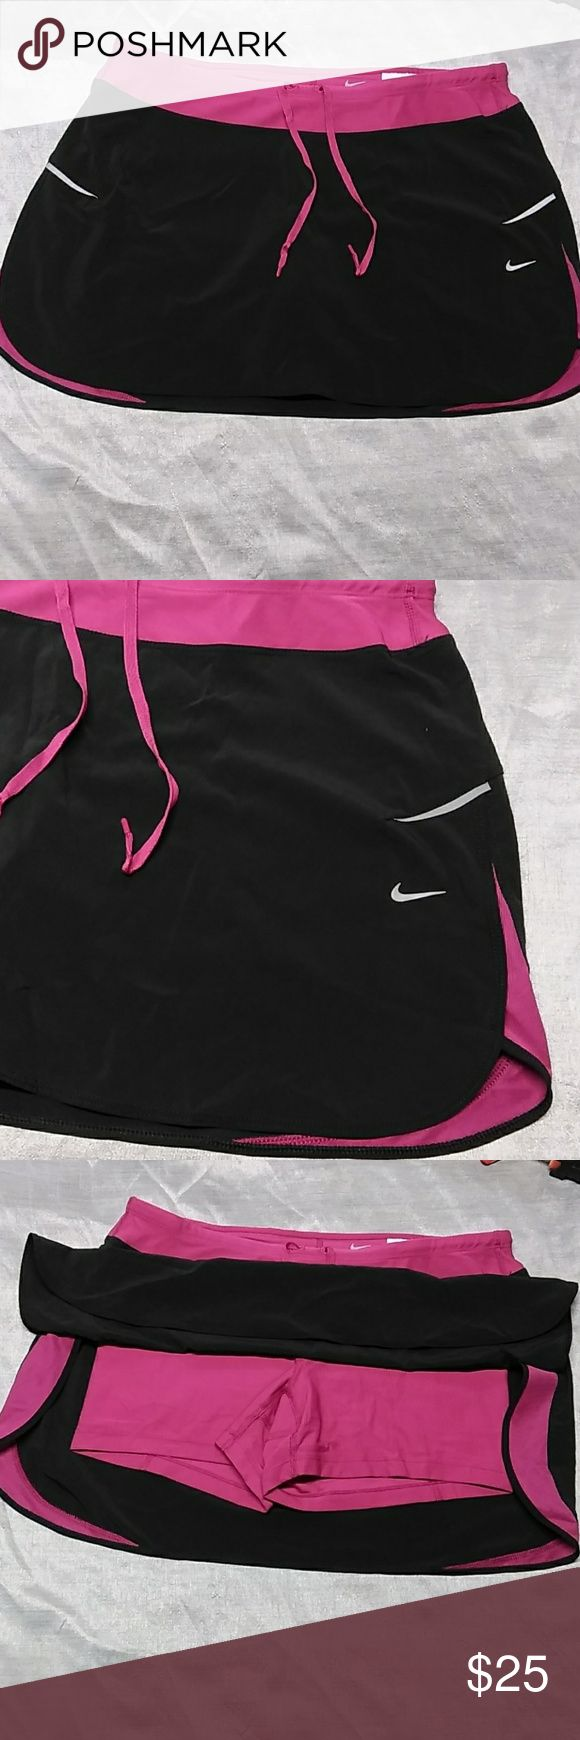 Nike Skirt Short S-7 Fri-fit Nike skirt short underneath  slits on both side color black and old rose.  Self tie on the waistline to adjust the fitting. Perfect condition   just like new.  Measurements laying flat  Waistline : 15. 5 inches Length:14 inches Pet/smooke Free home Nike Skirts